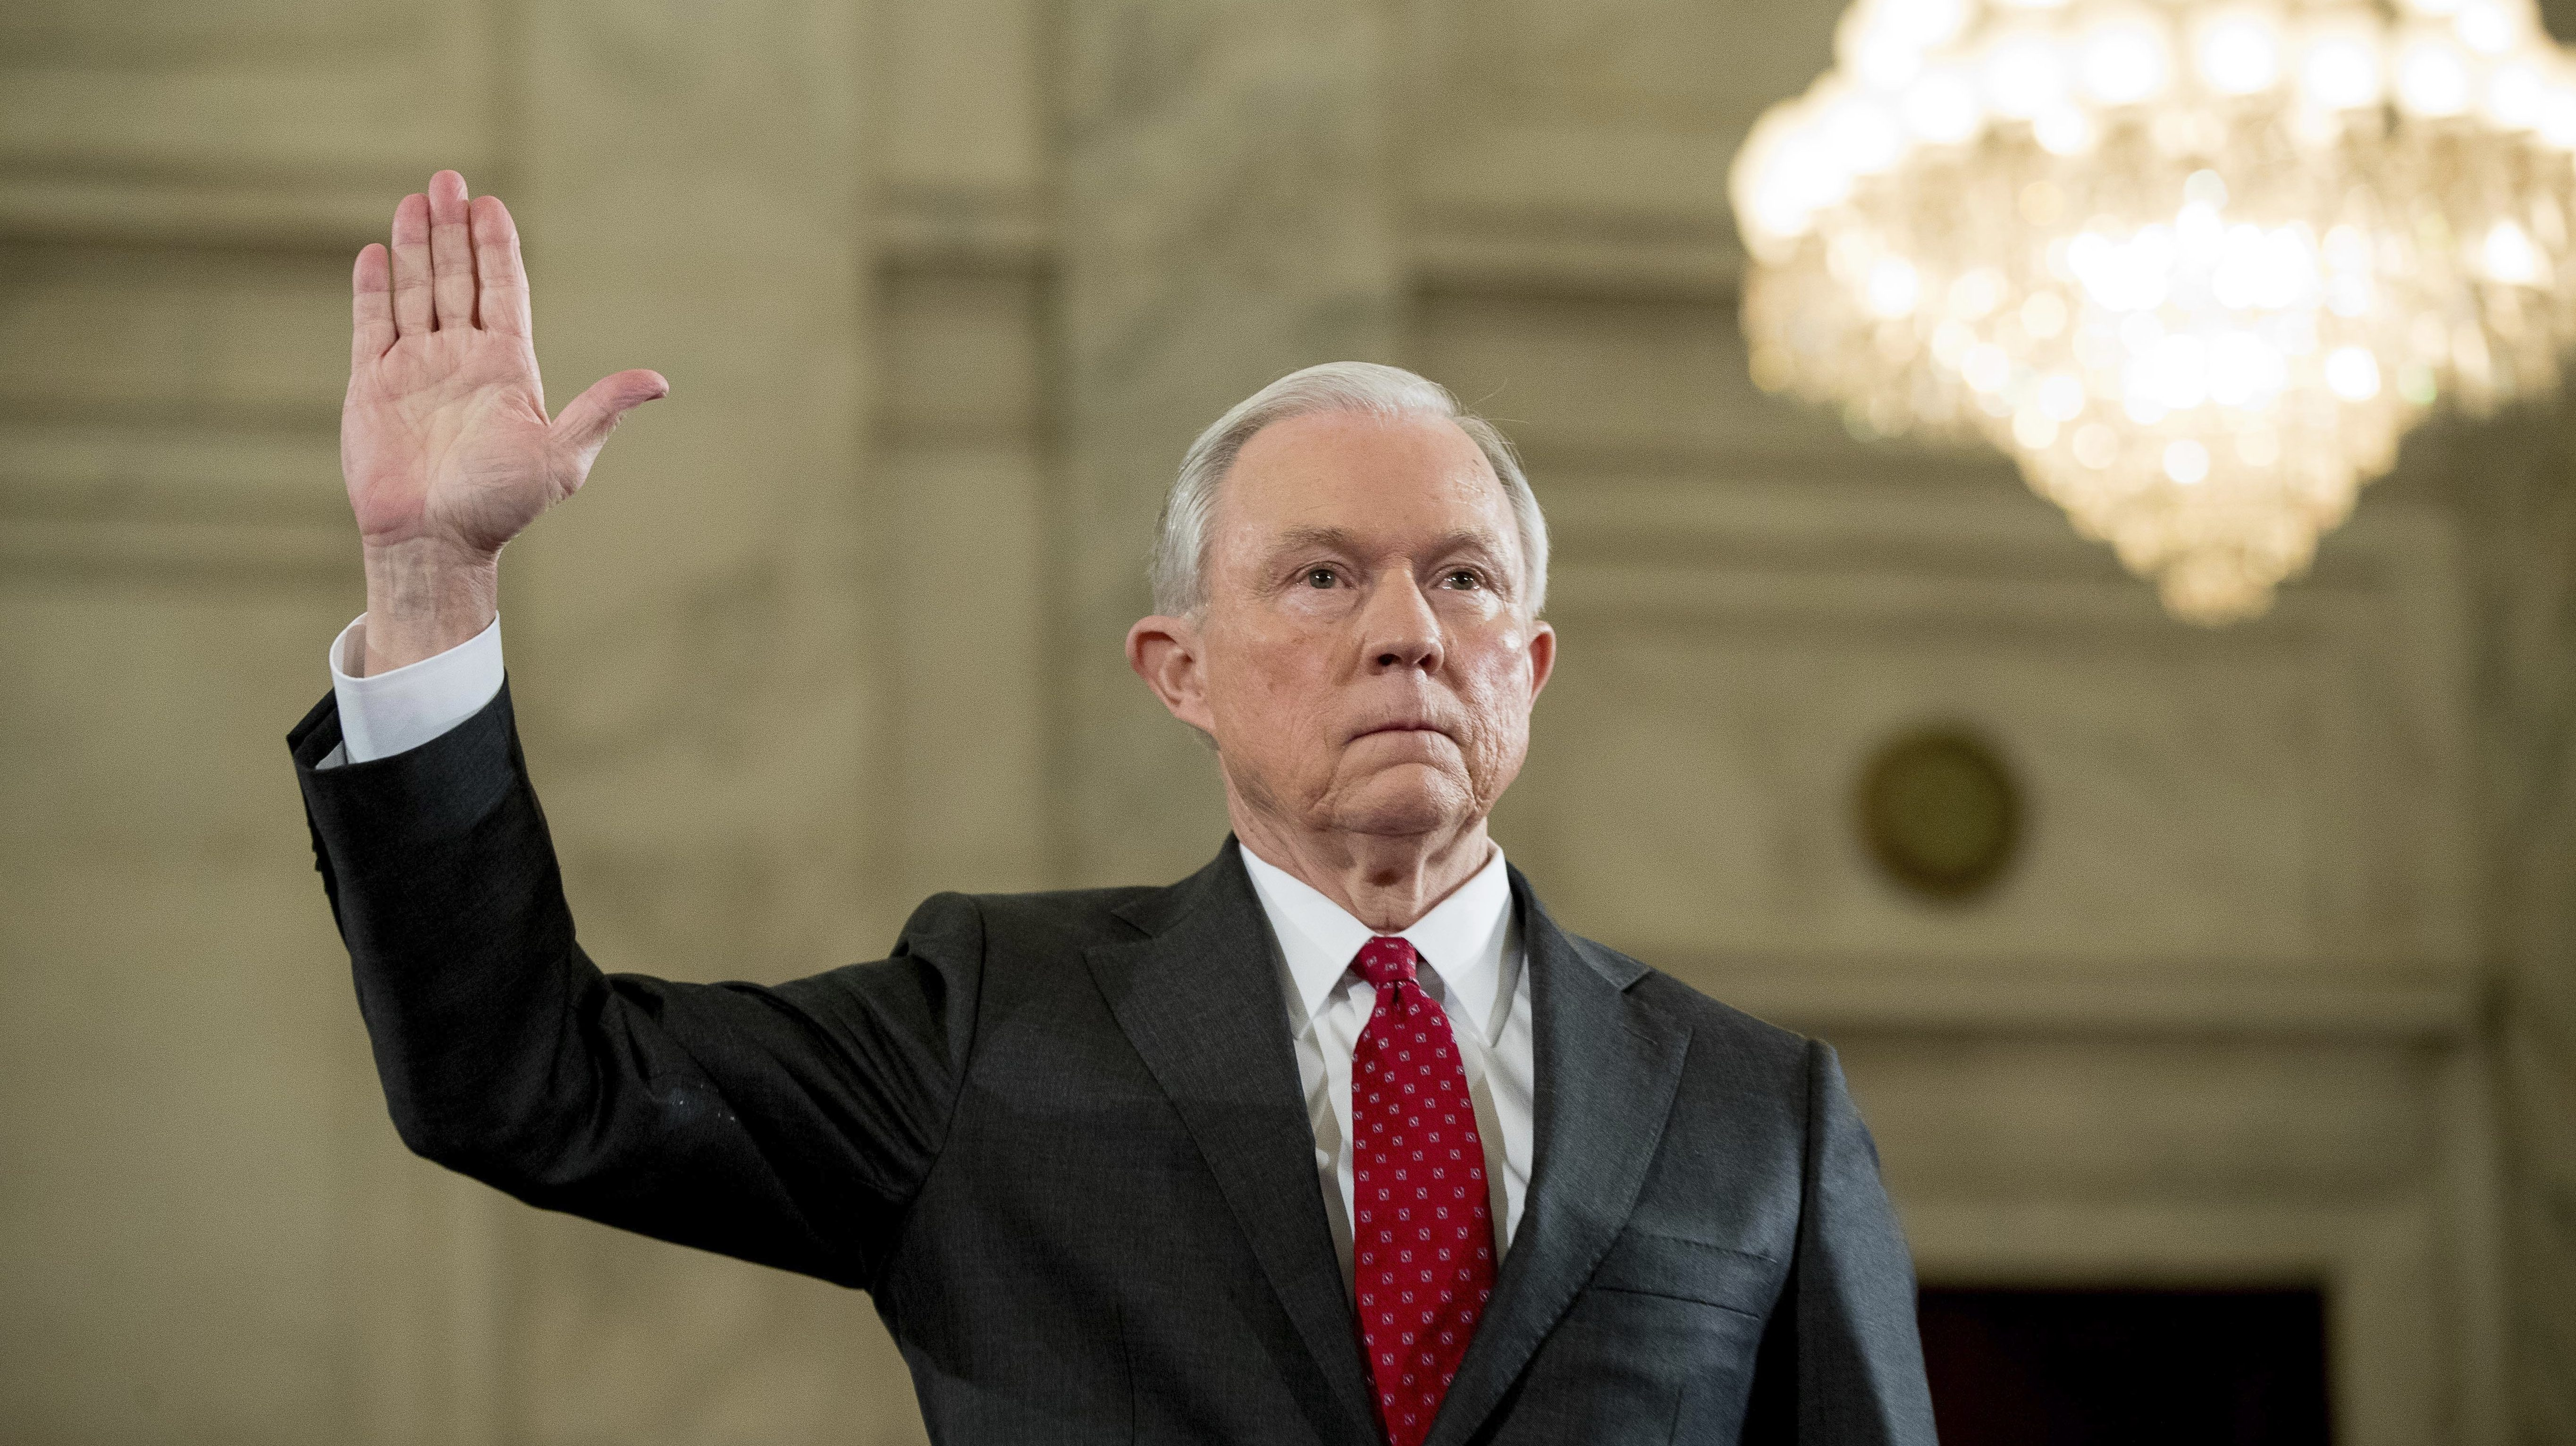 Attorney General-designate, Sen. Jeff Sessions, R-Ala. is sworn in on Capitol Hill in Washington